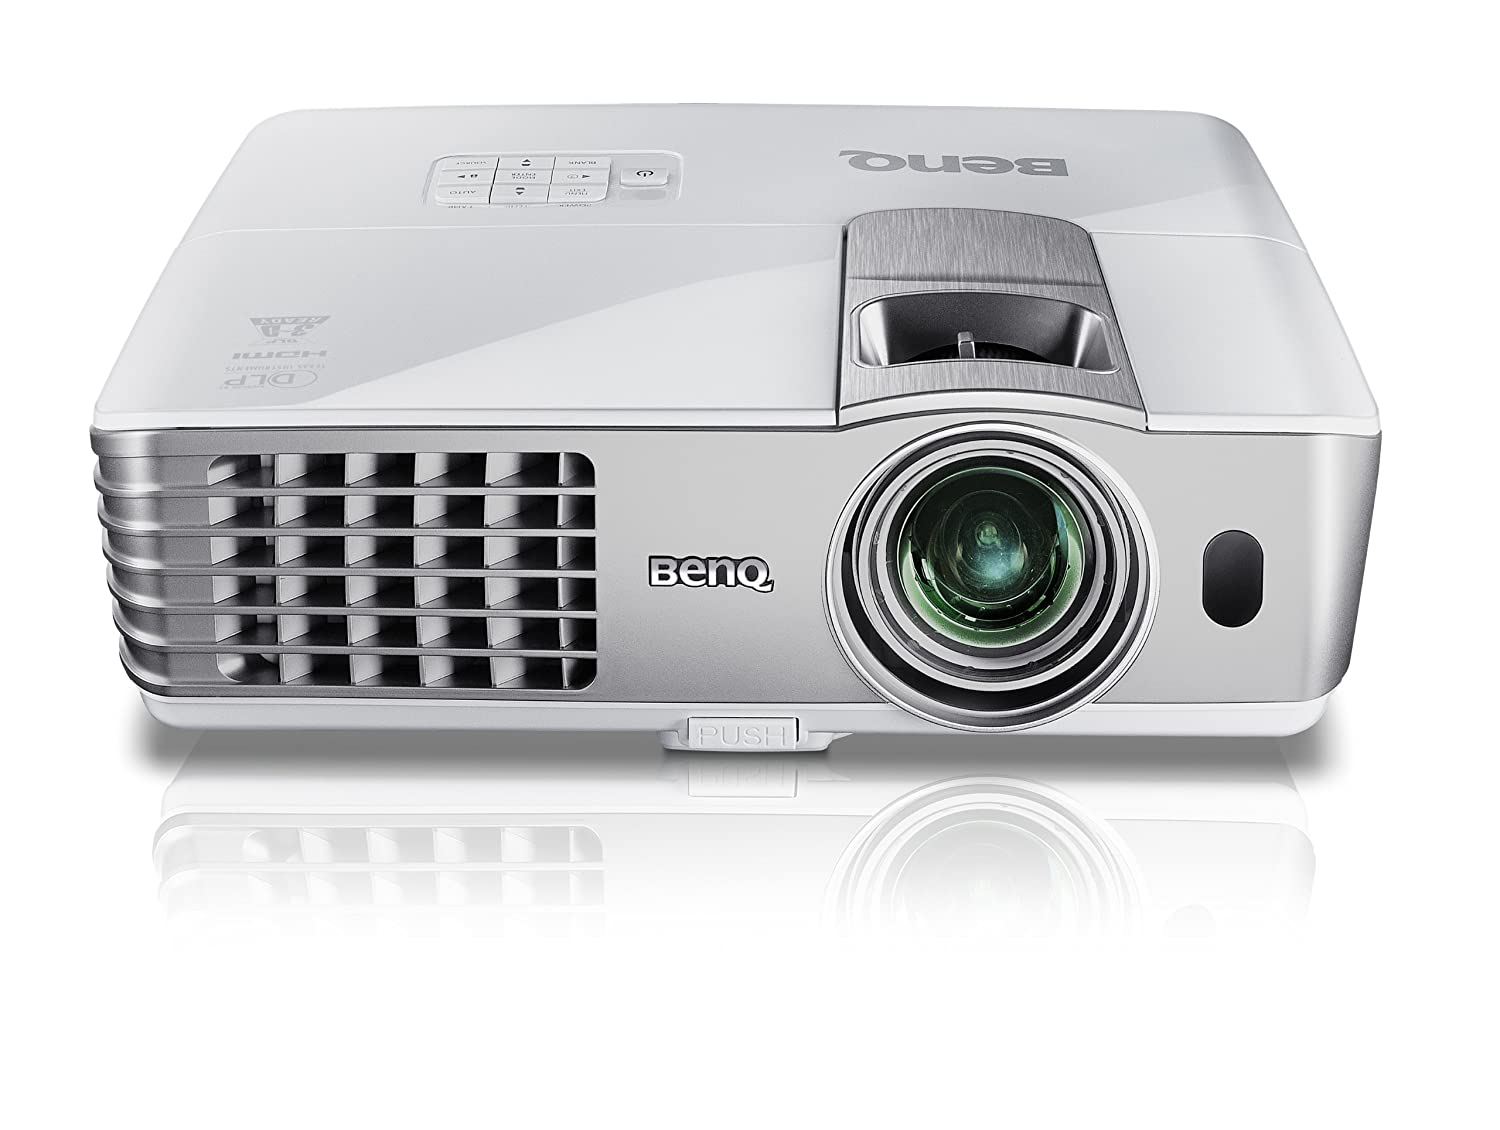 BenQ MS616ST - Proyector (800x600), color gris: Amazon.es: Electrónica